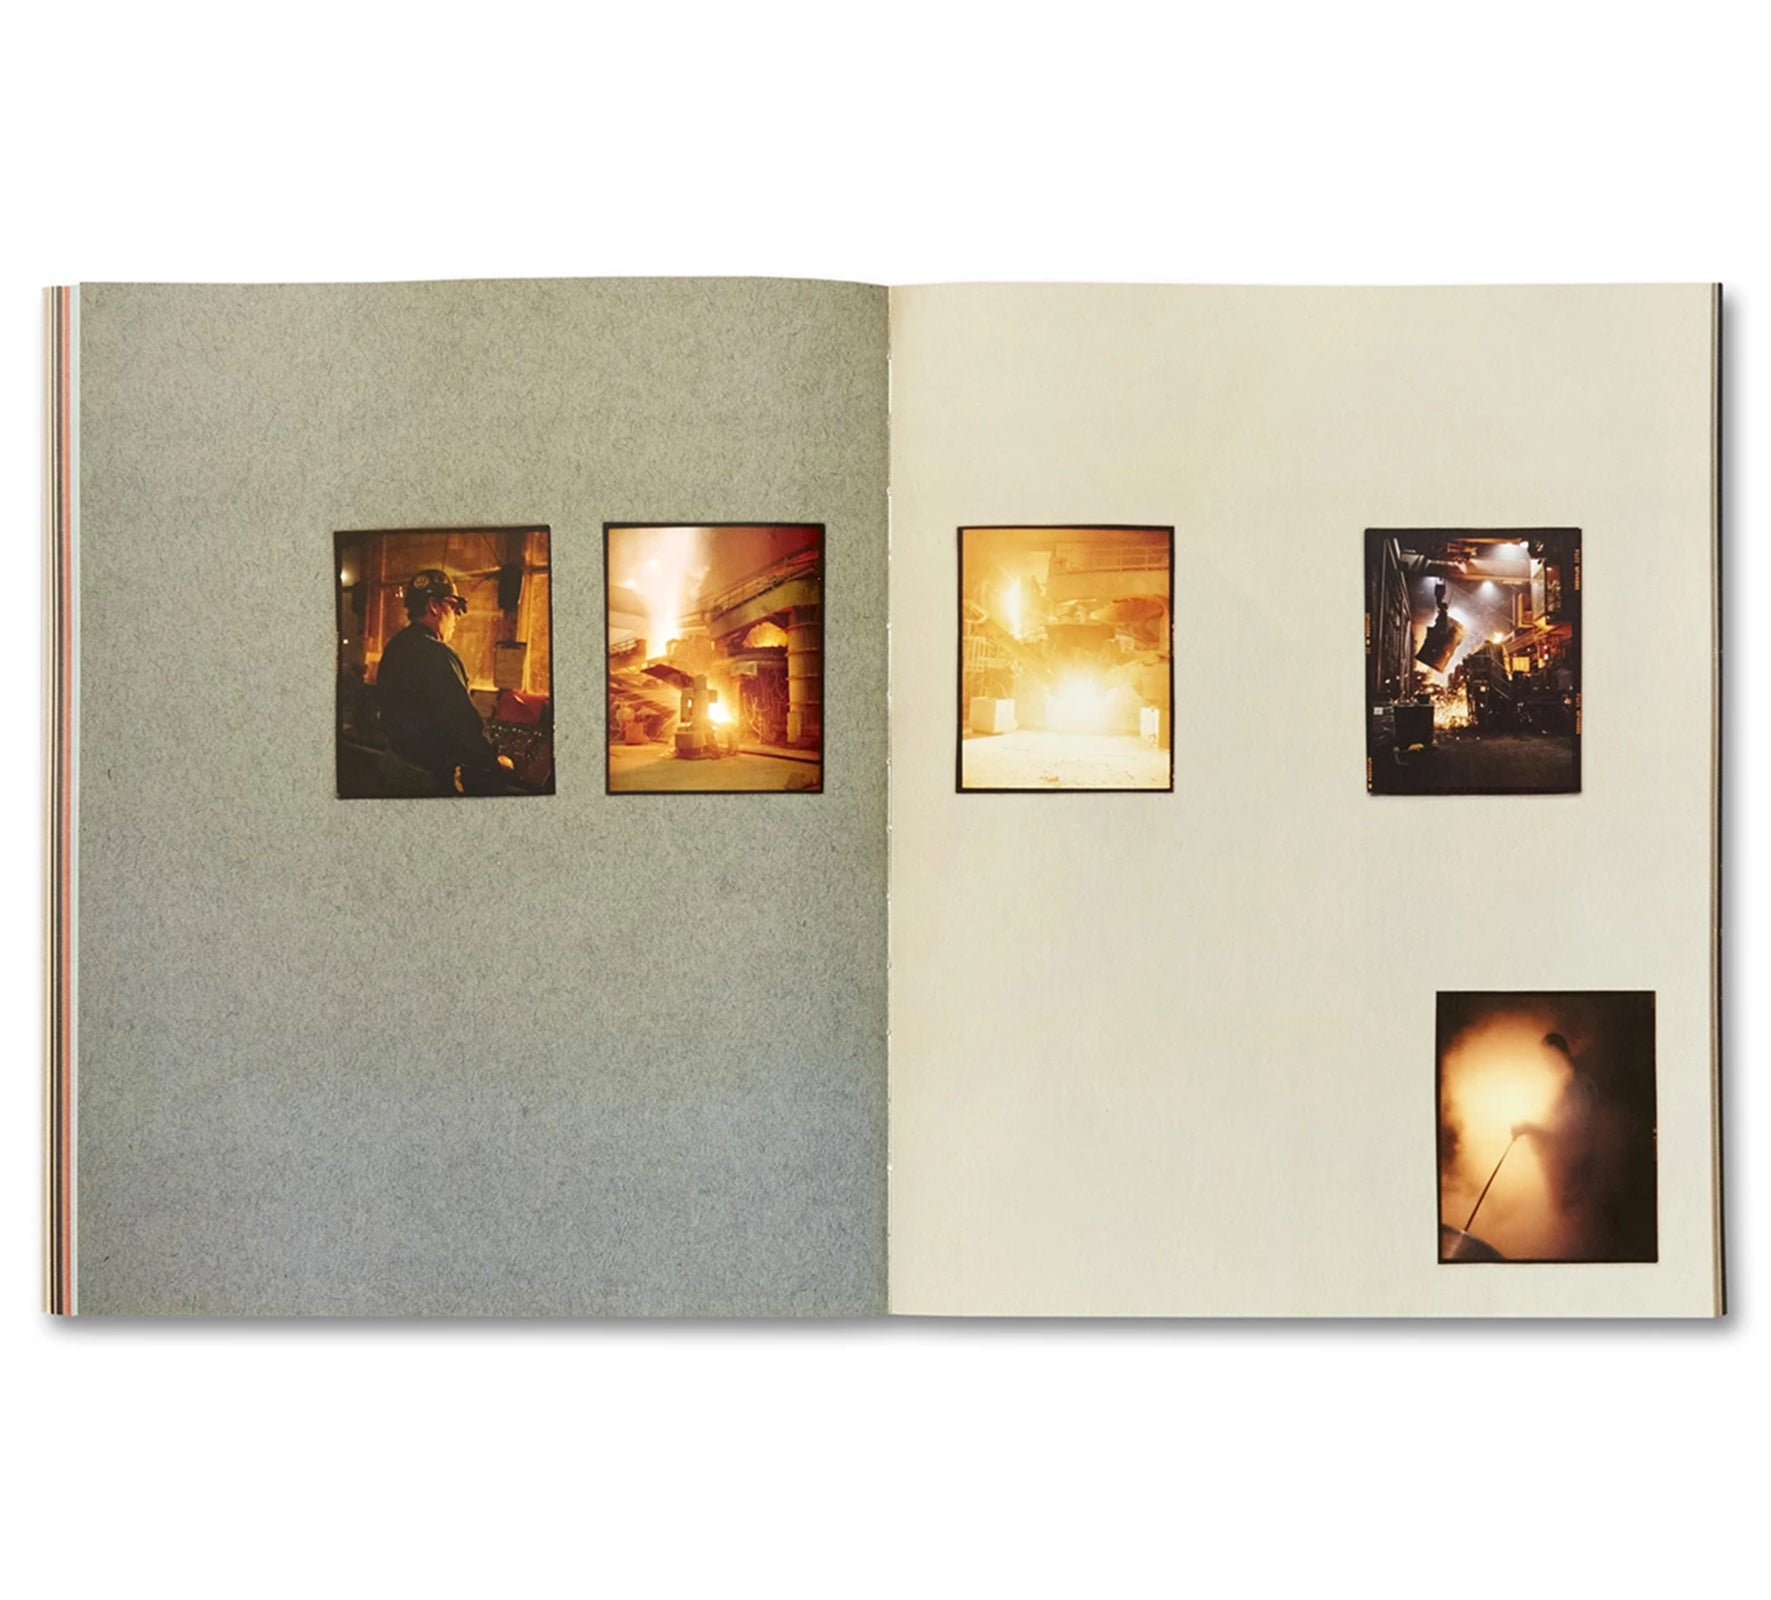 OMAHA SKETCHBOOK by Gregory Halpern